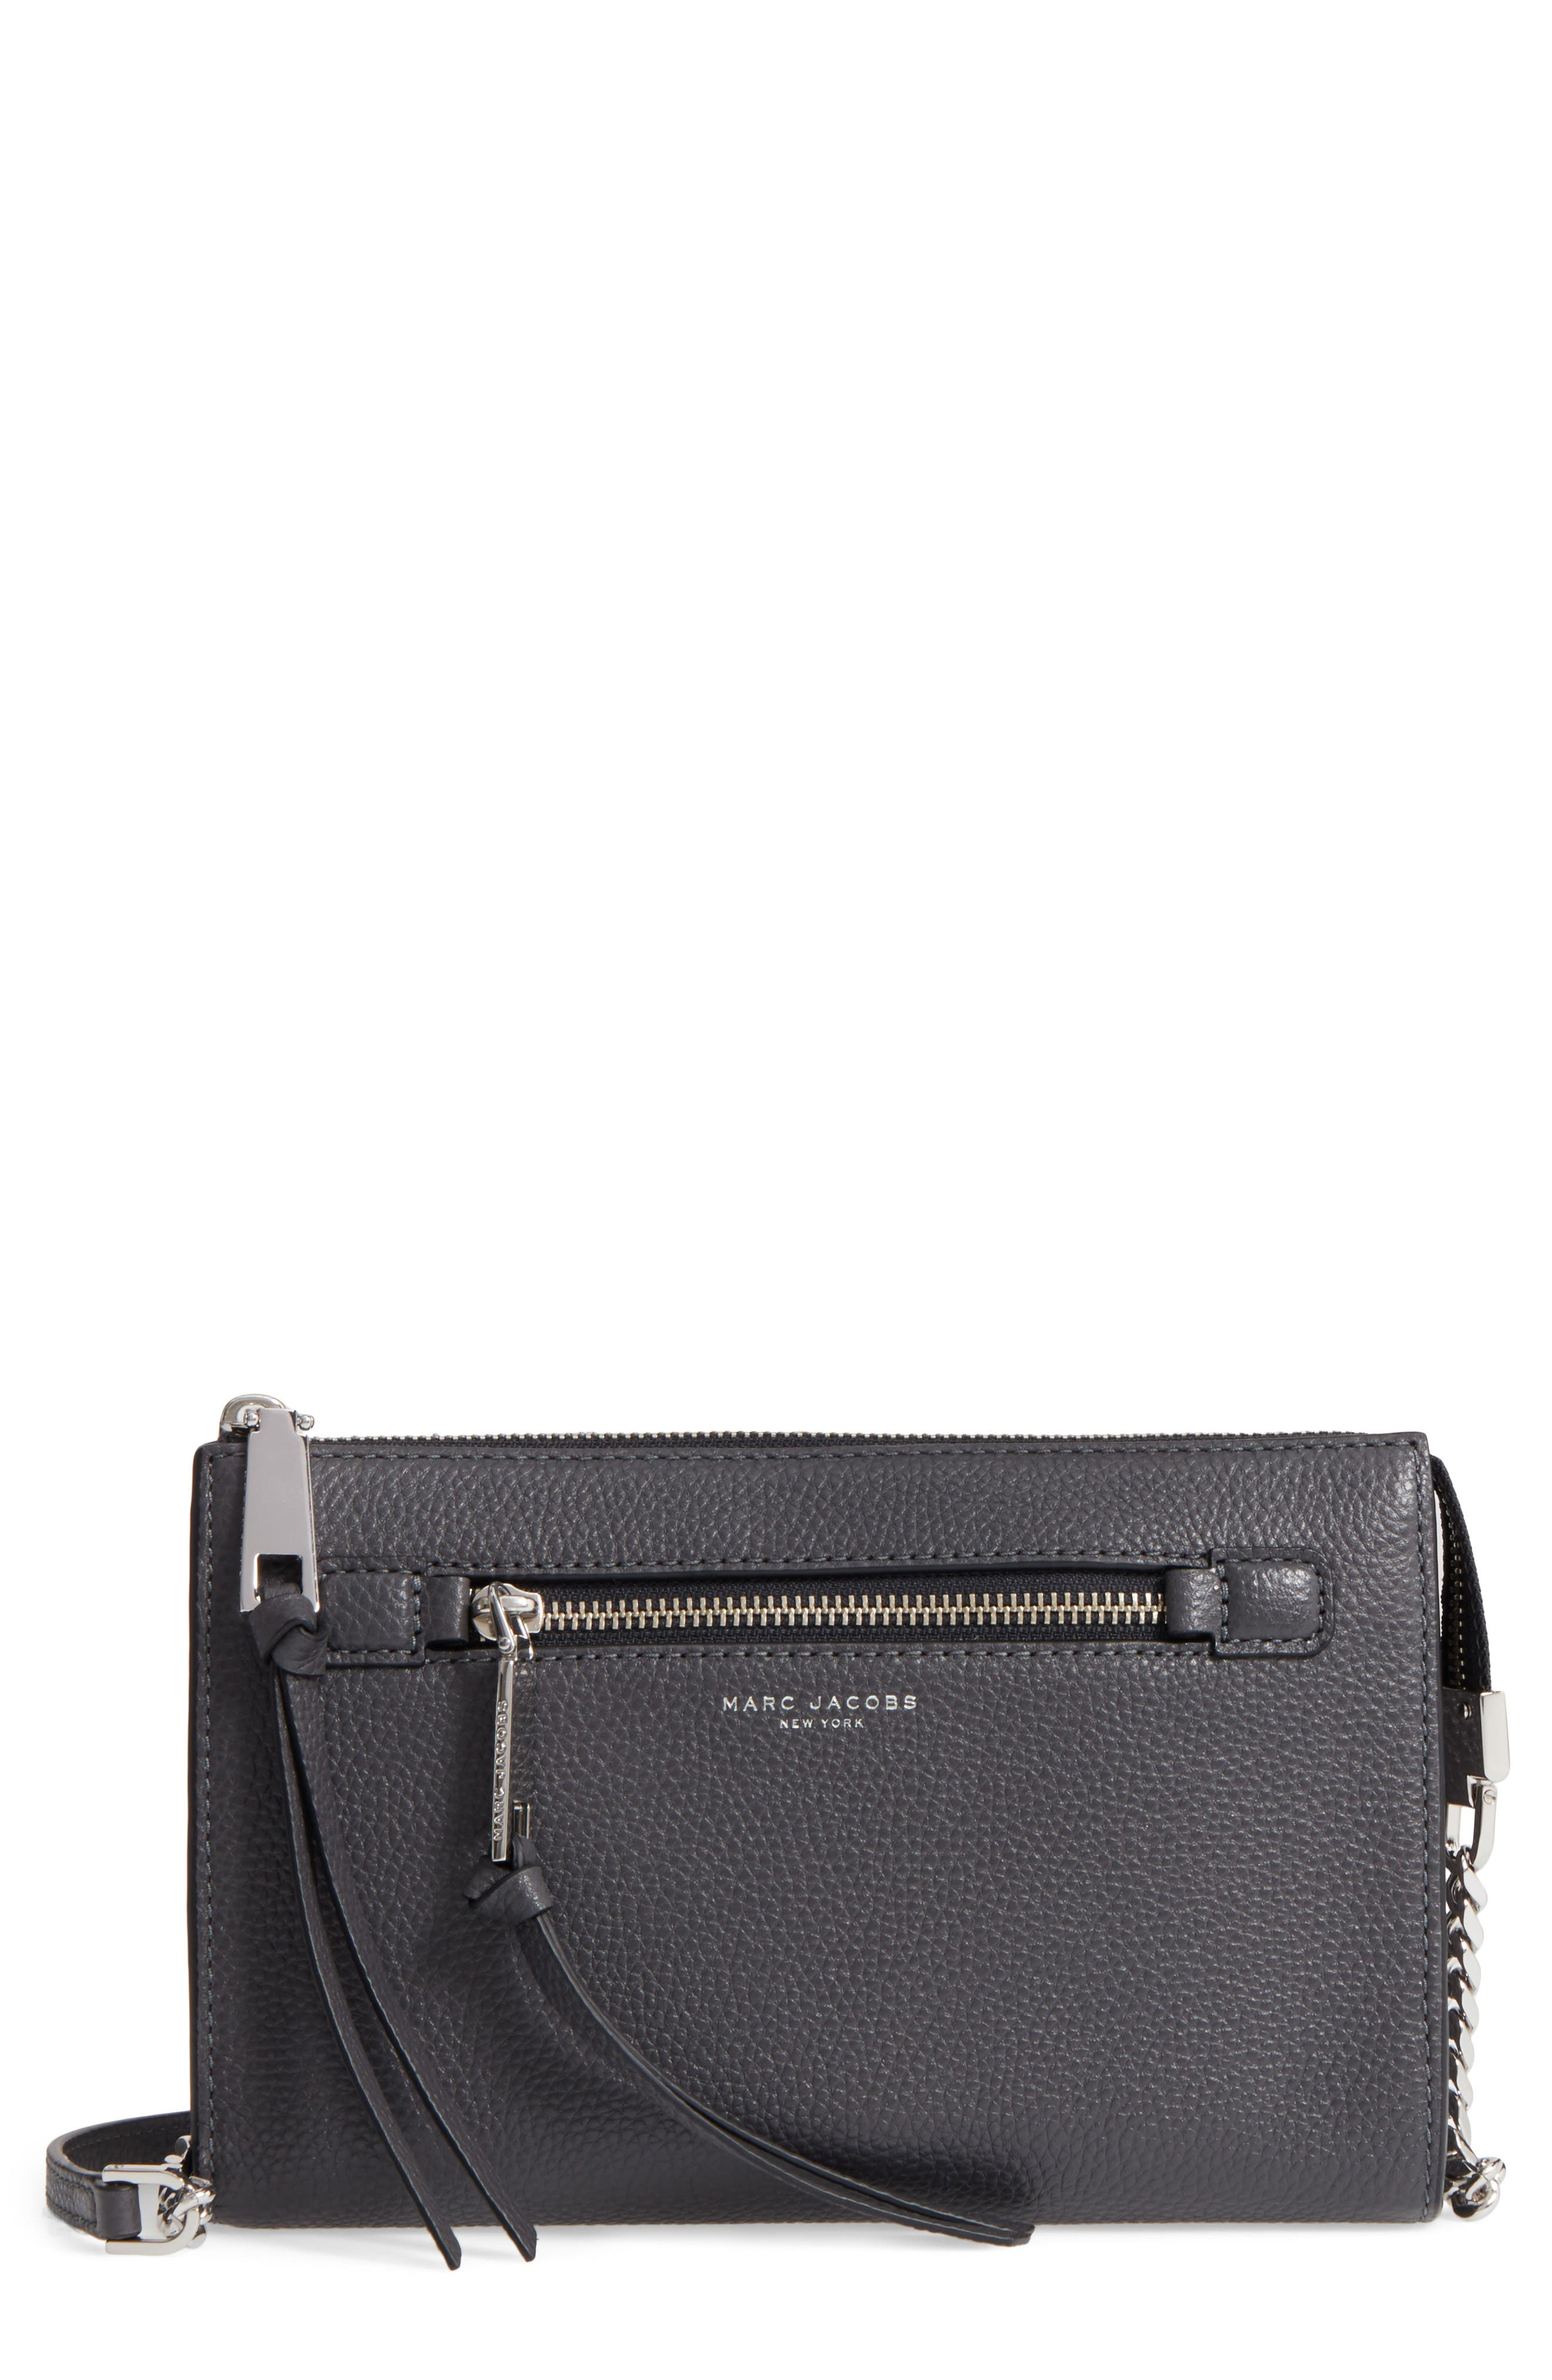 Main Image - MARC JACOBS Small Recruit Leather Crossbody Bag